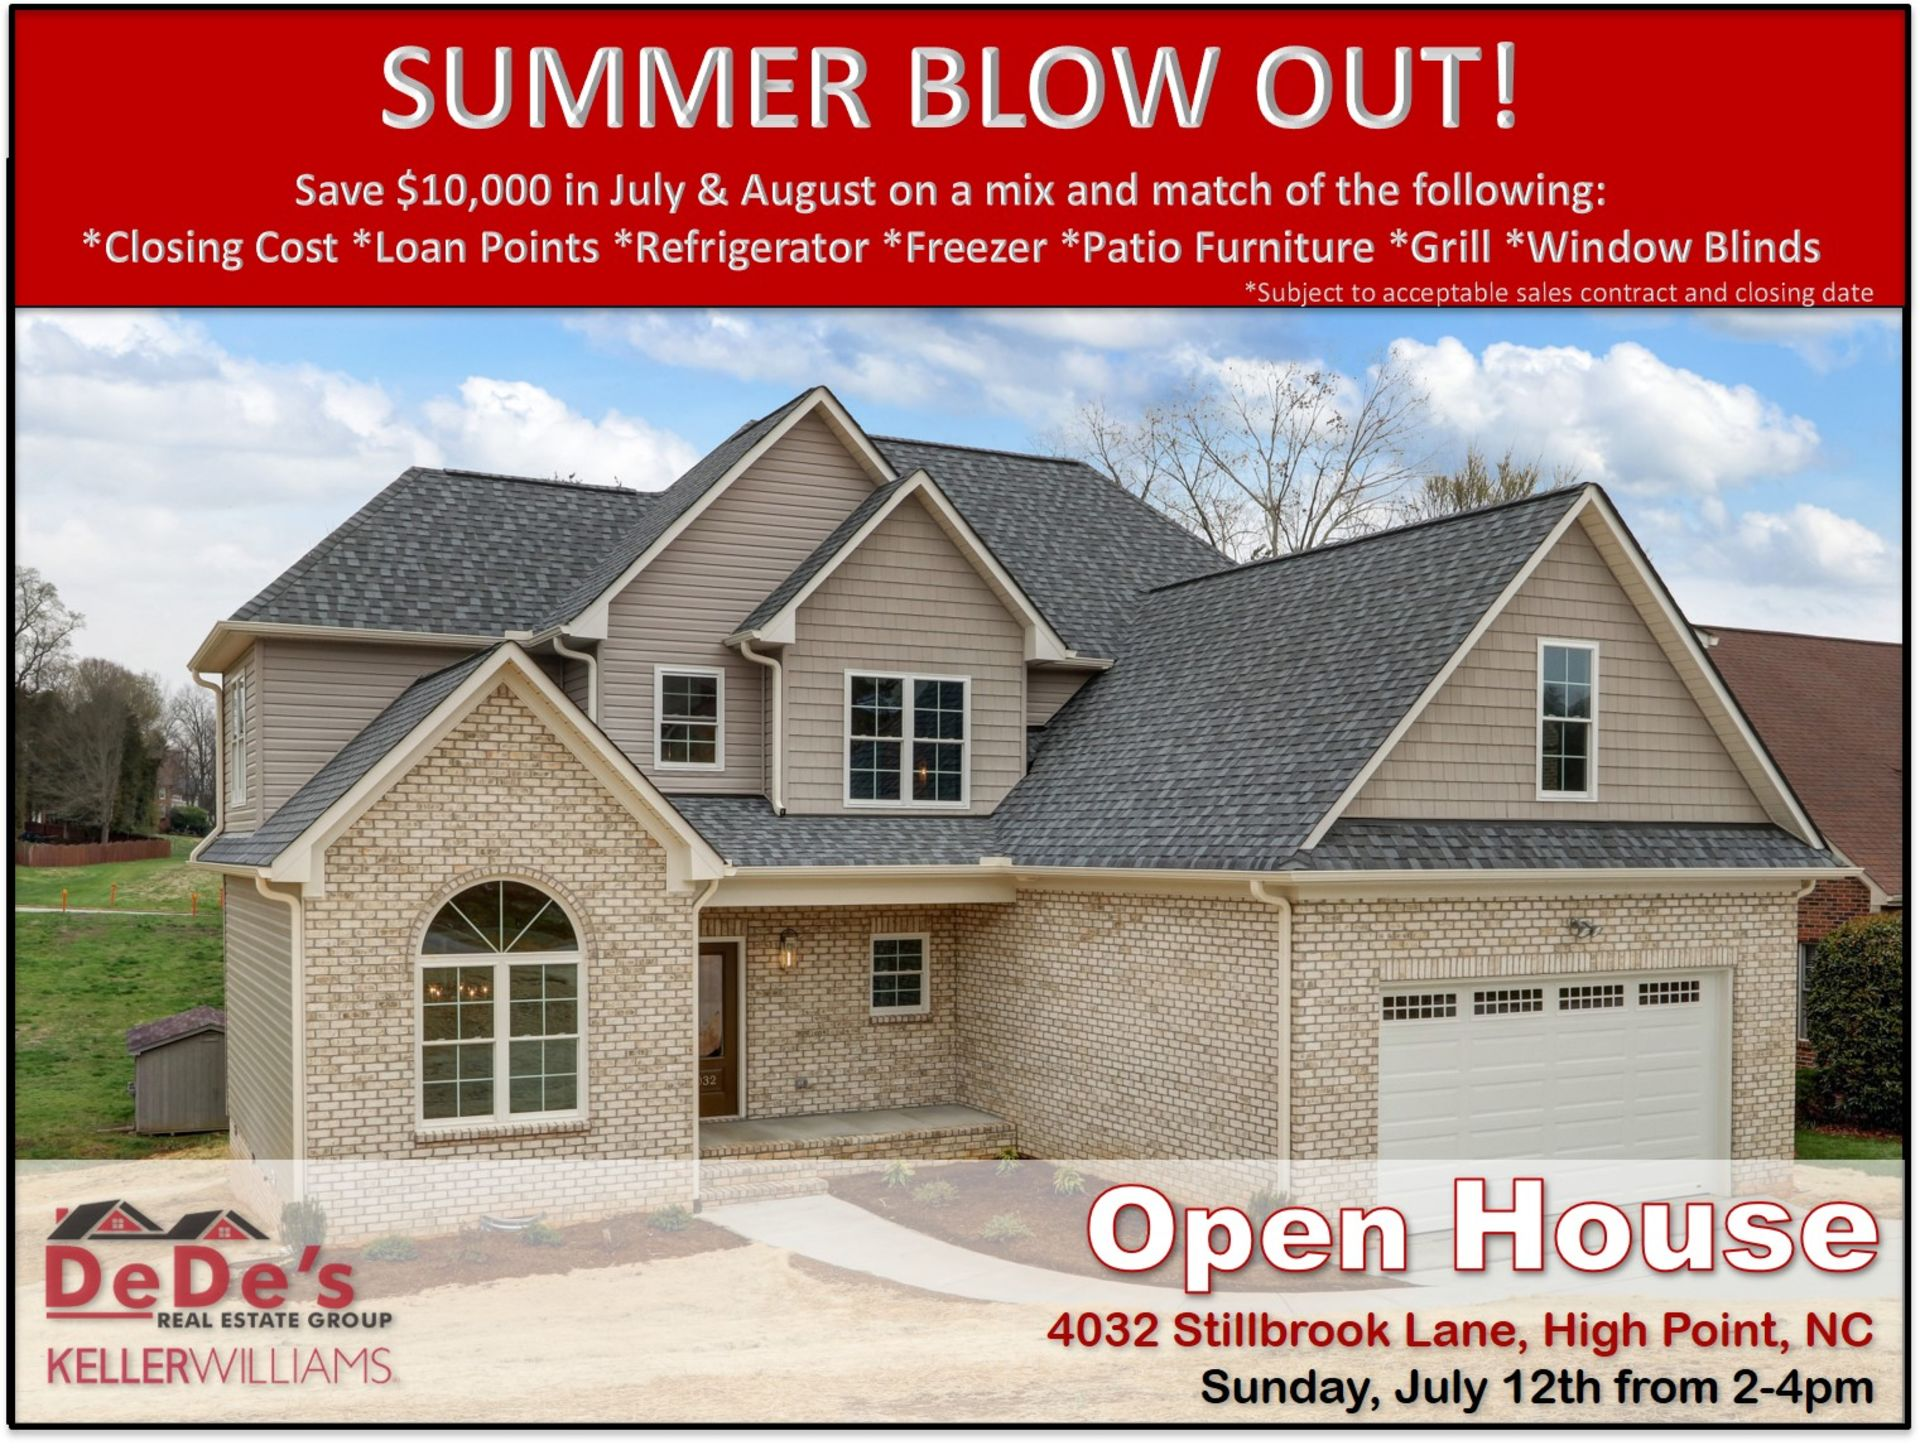 OPEN HOUSE THIS WEEKEND – JULY 12 from 2:00 – 4:00